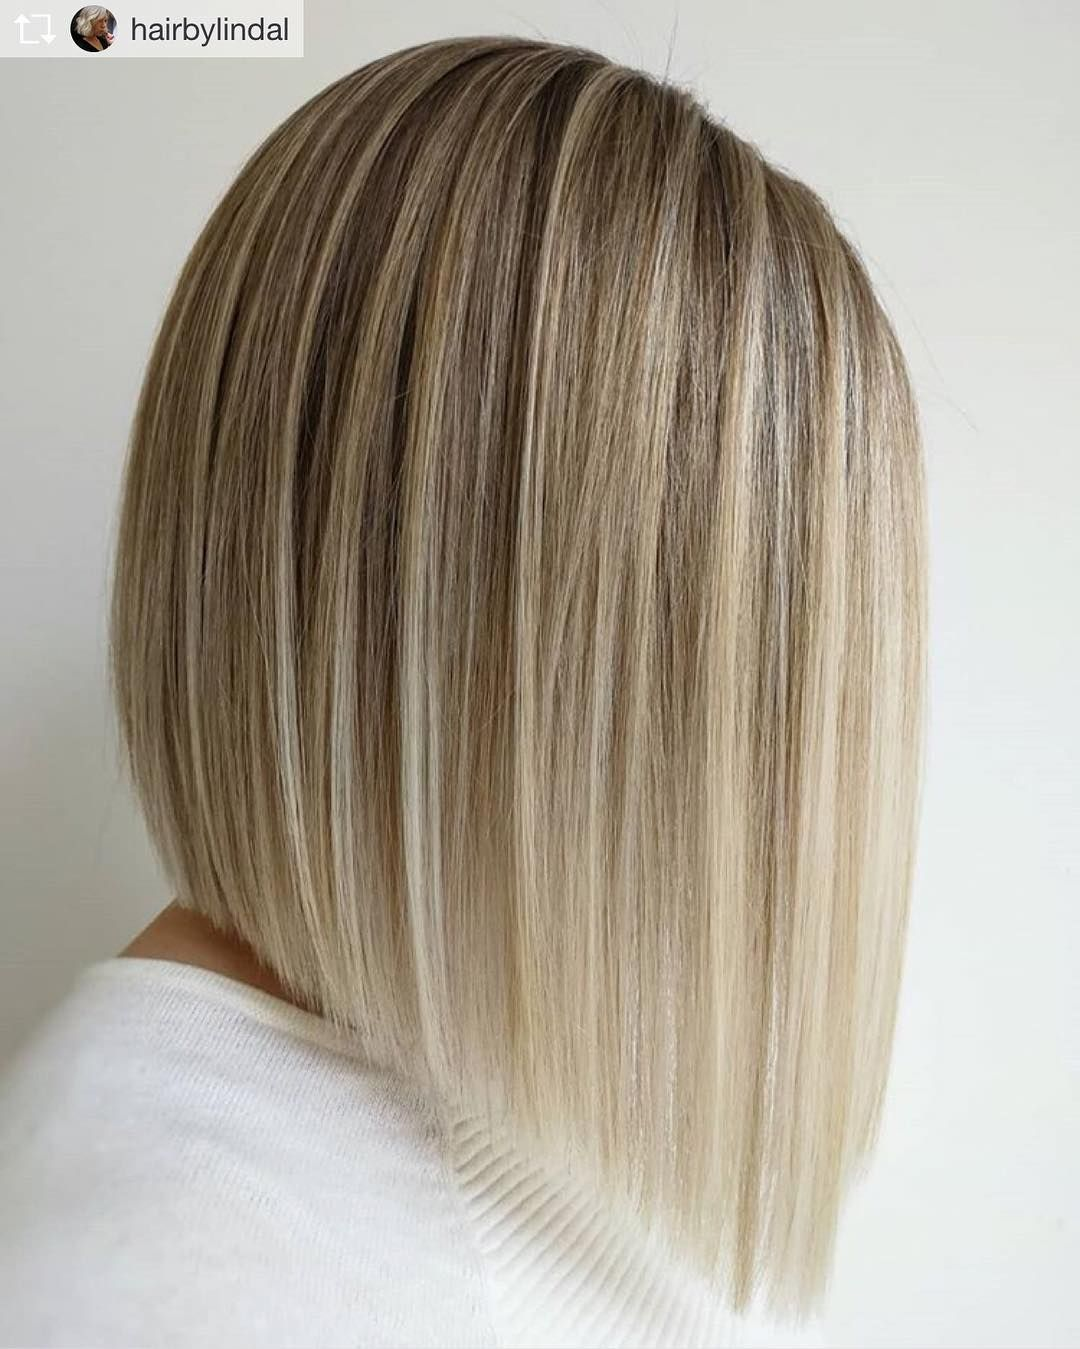 Bob Hairstyles for Beautiful Ladies 10 - Ladiesways.com Women